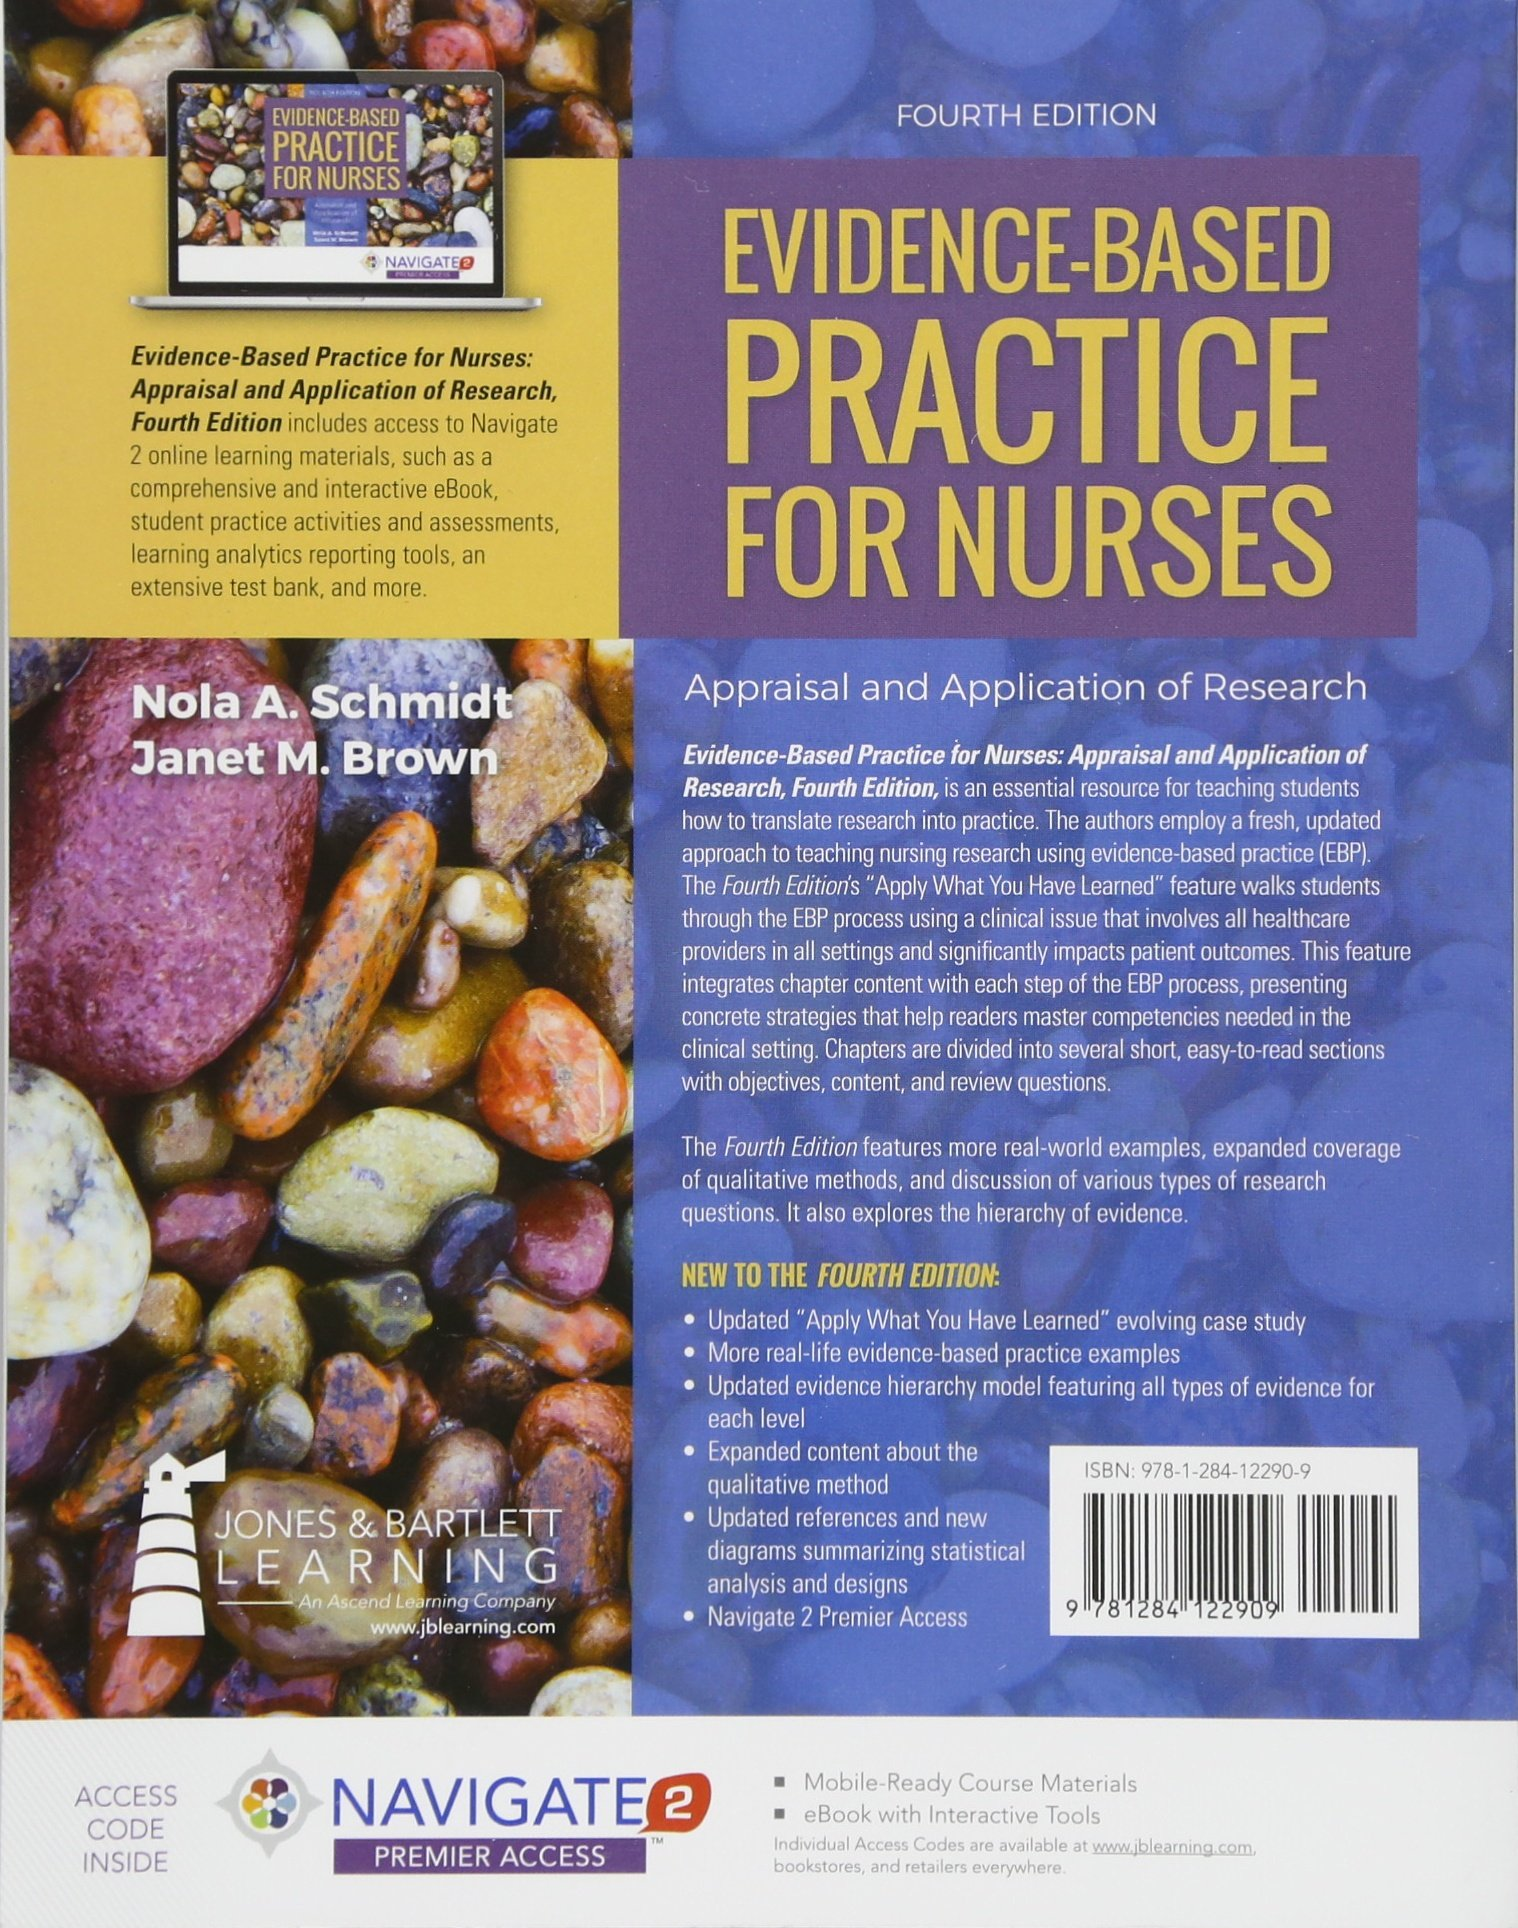 Evidence-Based Practice for Nurses: Appraisal and Application of Research by Jones & Bartlett Learning